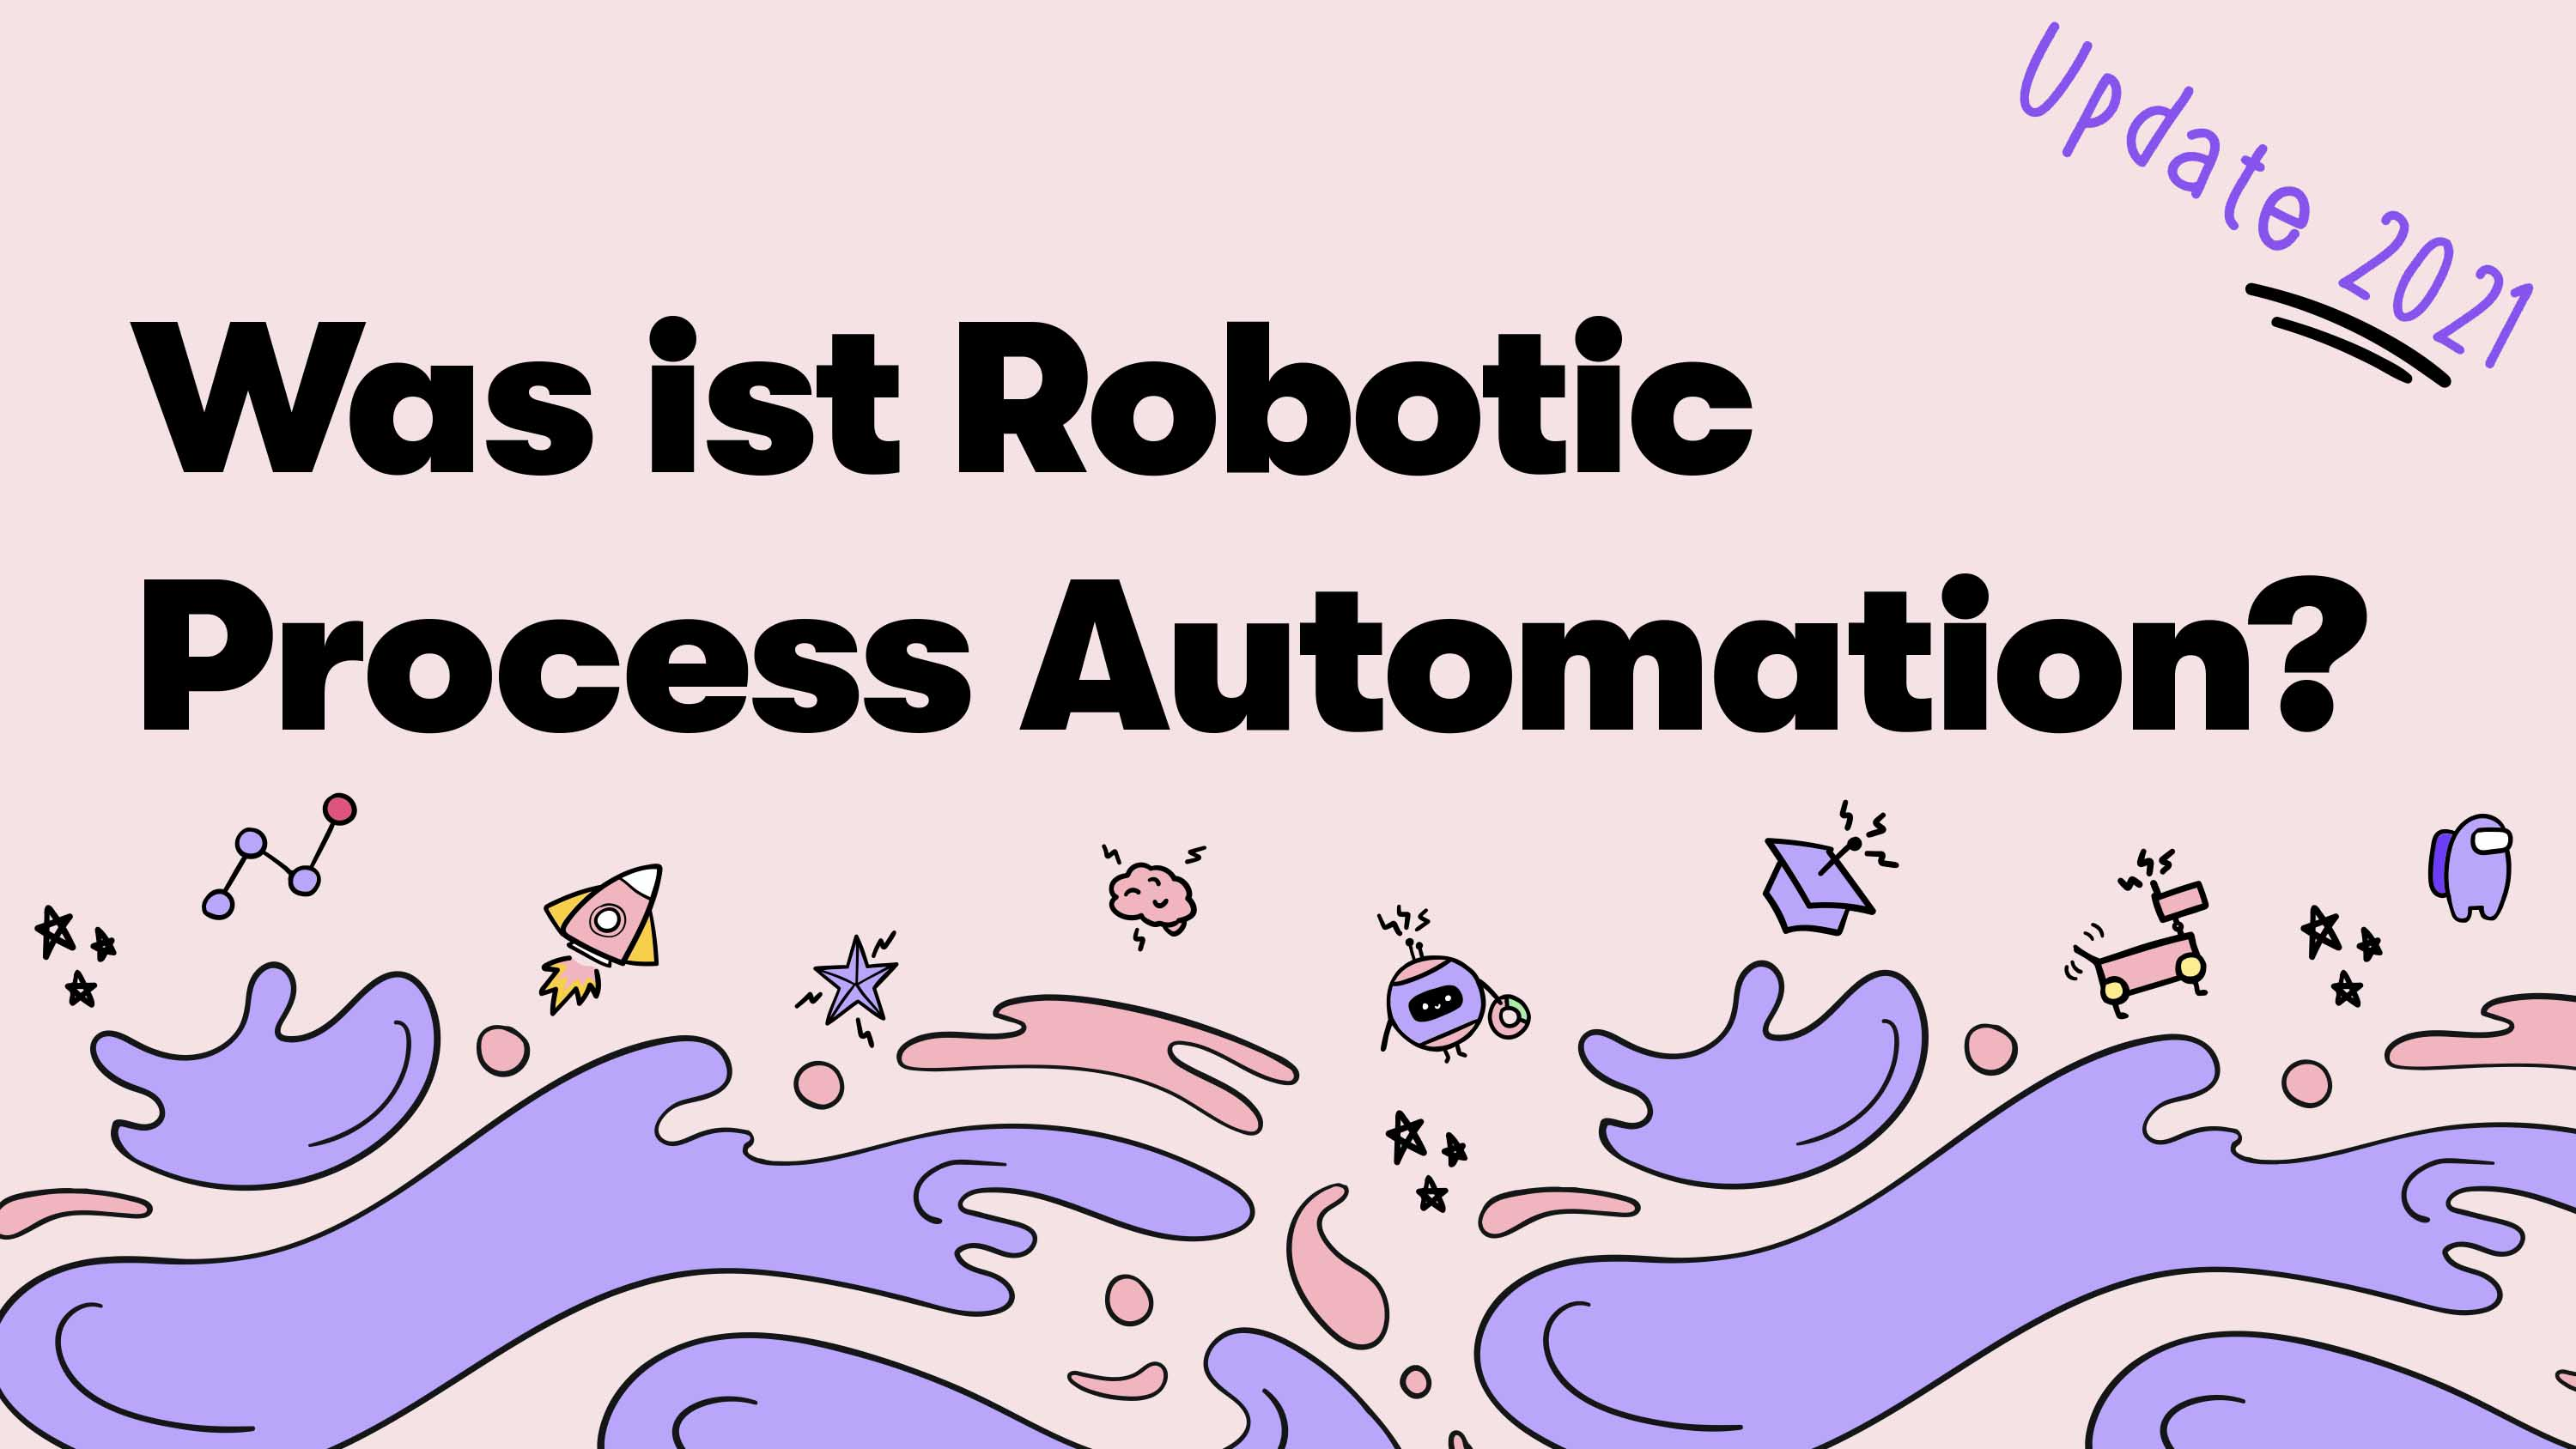 Update 2021: Was ist Robotic Process Automation (RPA)?